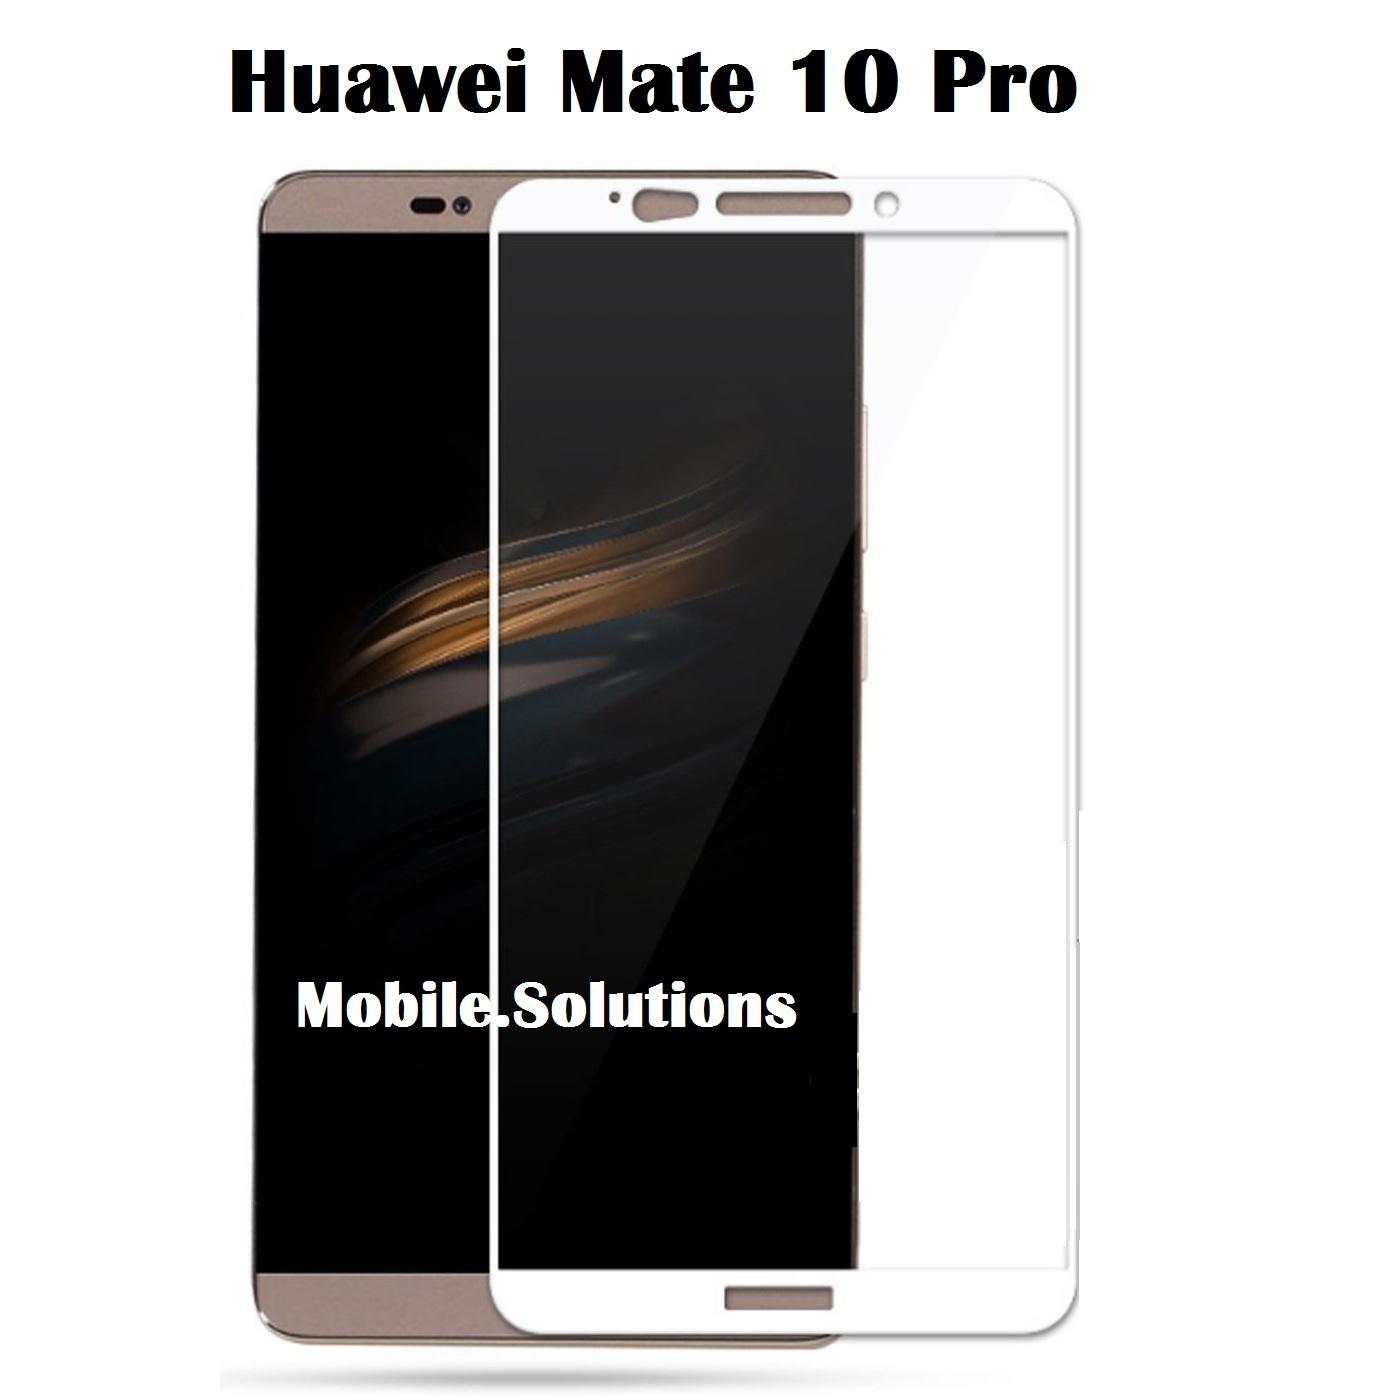 Huawei Mate 10 Pro Full Coverage Tempered Glass Screen Protector White